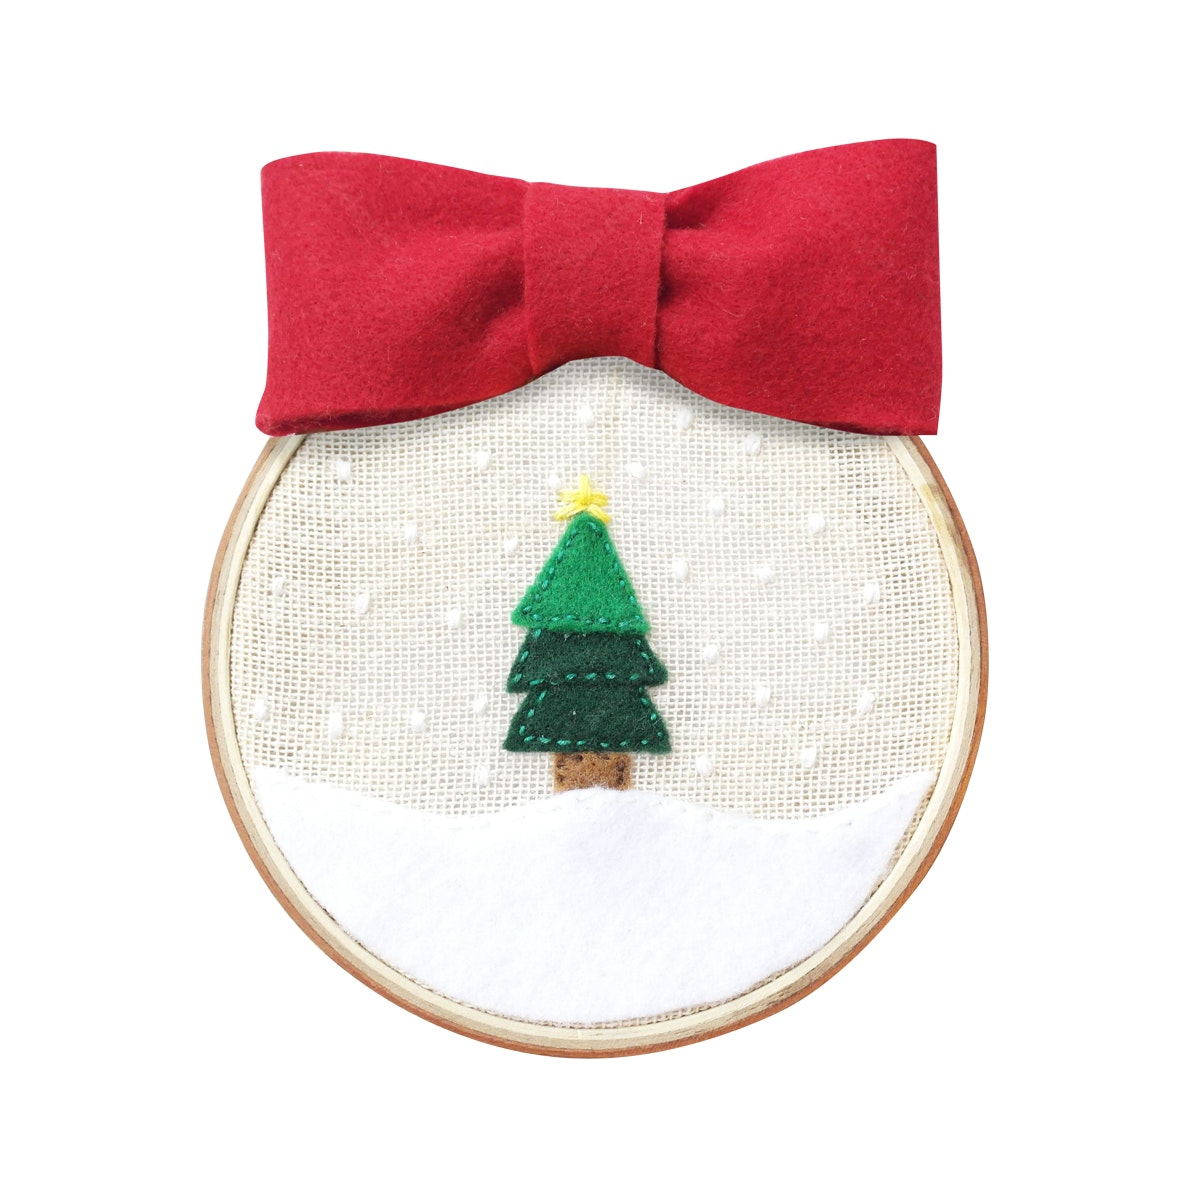 Gulaliku Dekorasi Natal - Hoop Art Embroidery - Christmas Tree small